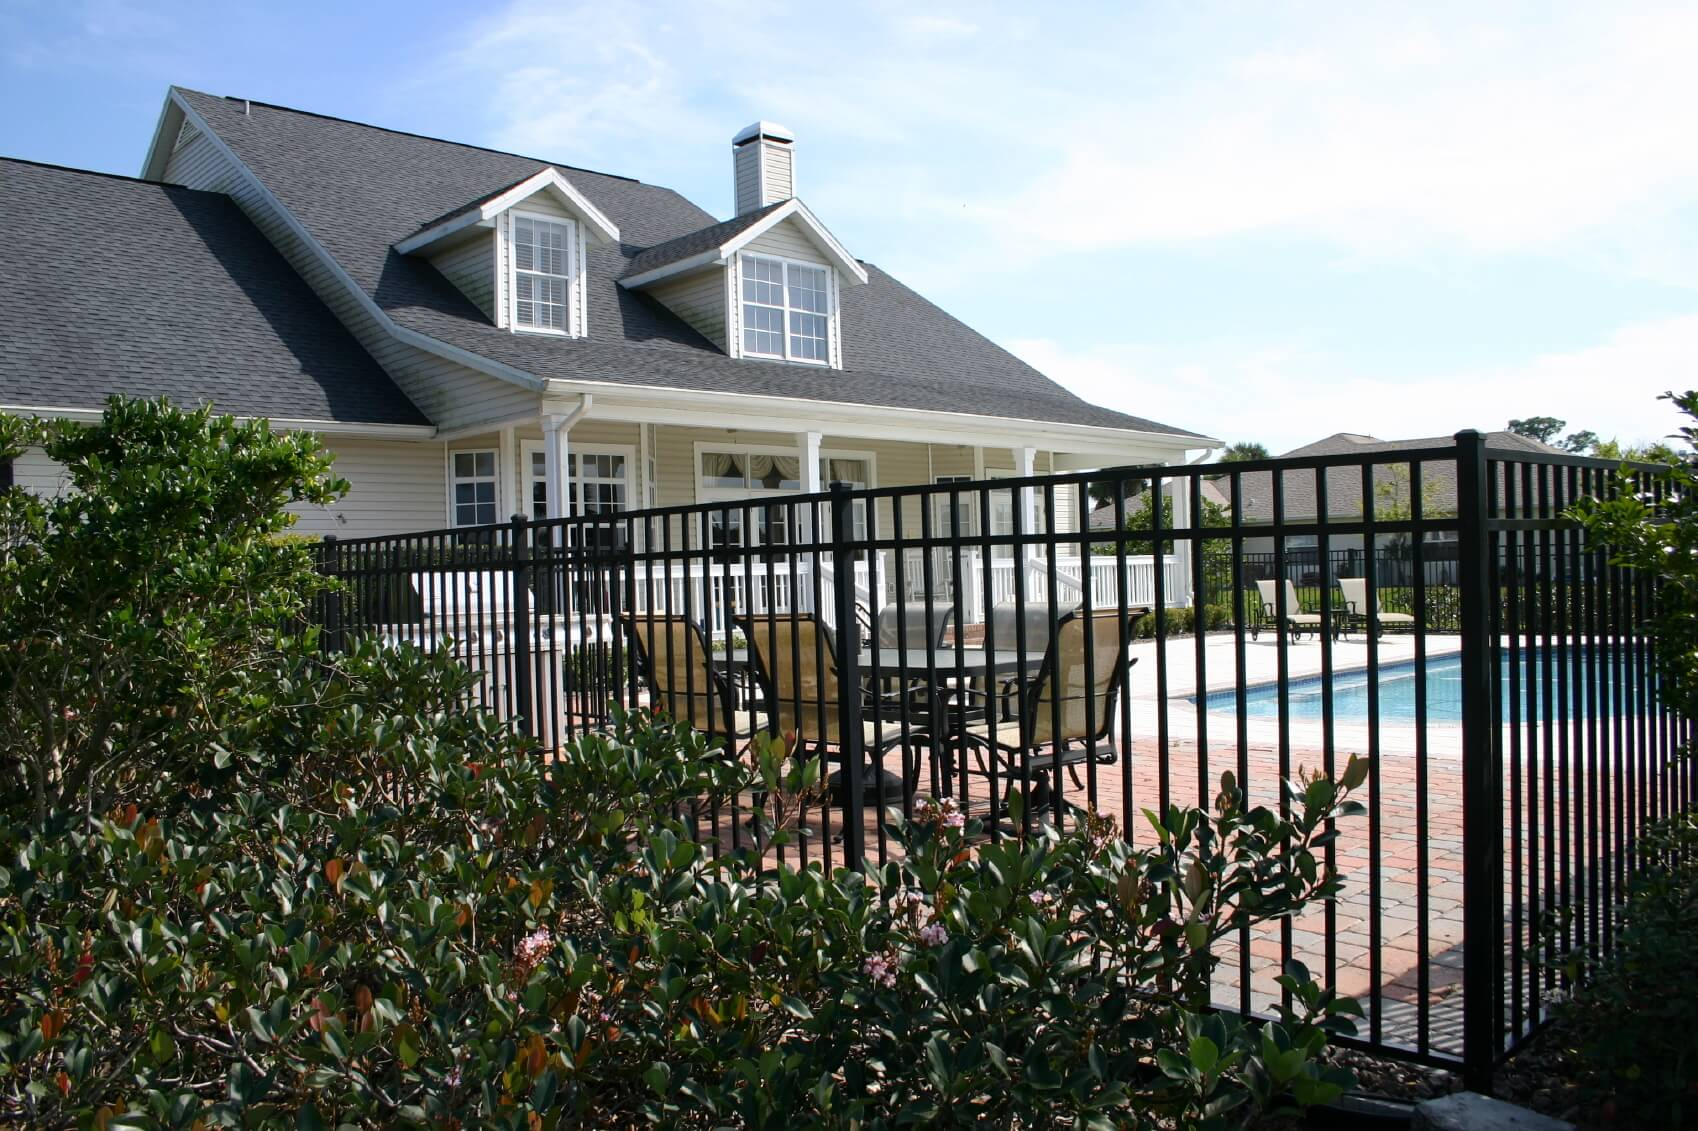 Lovely black wrought iron fence surrounding a backyard pool complex.